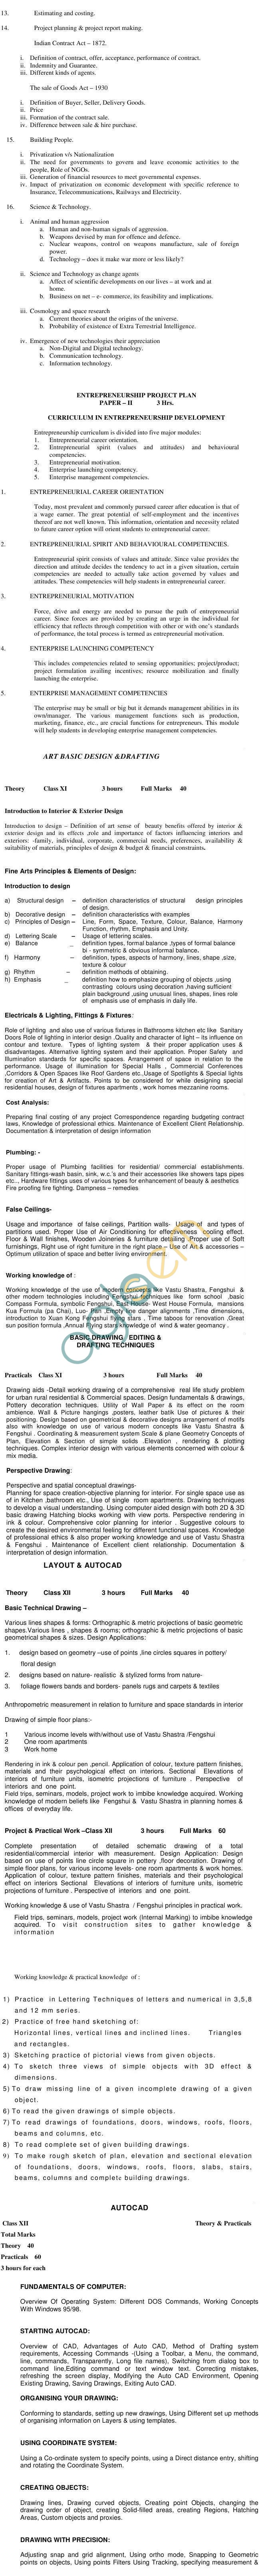 ICSCE CVE-12 Interior Design Syllabus 2014